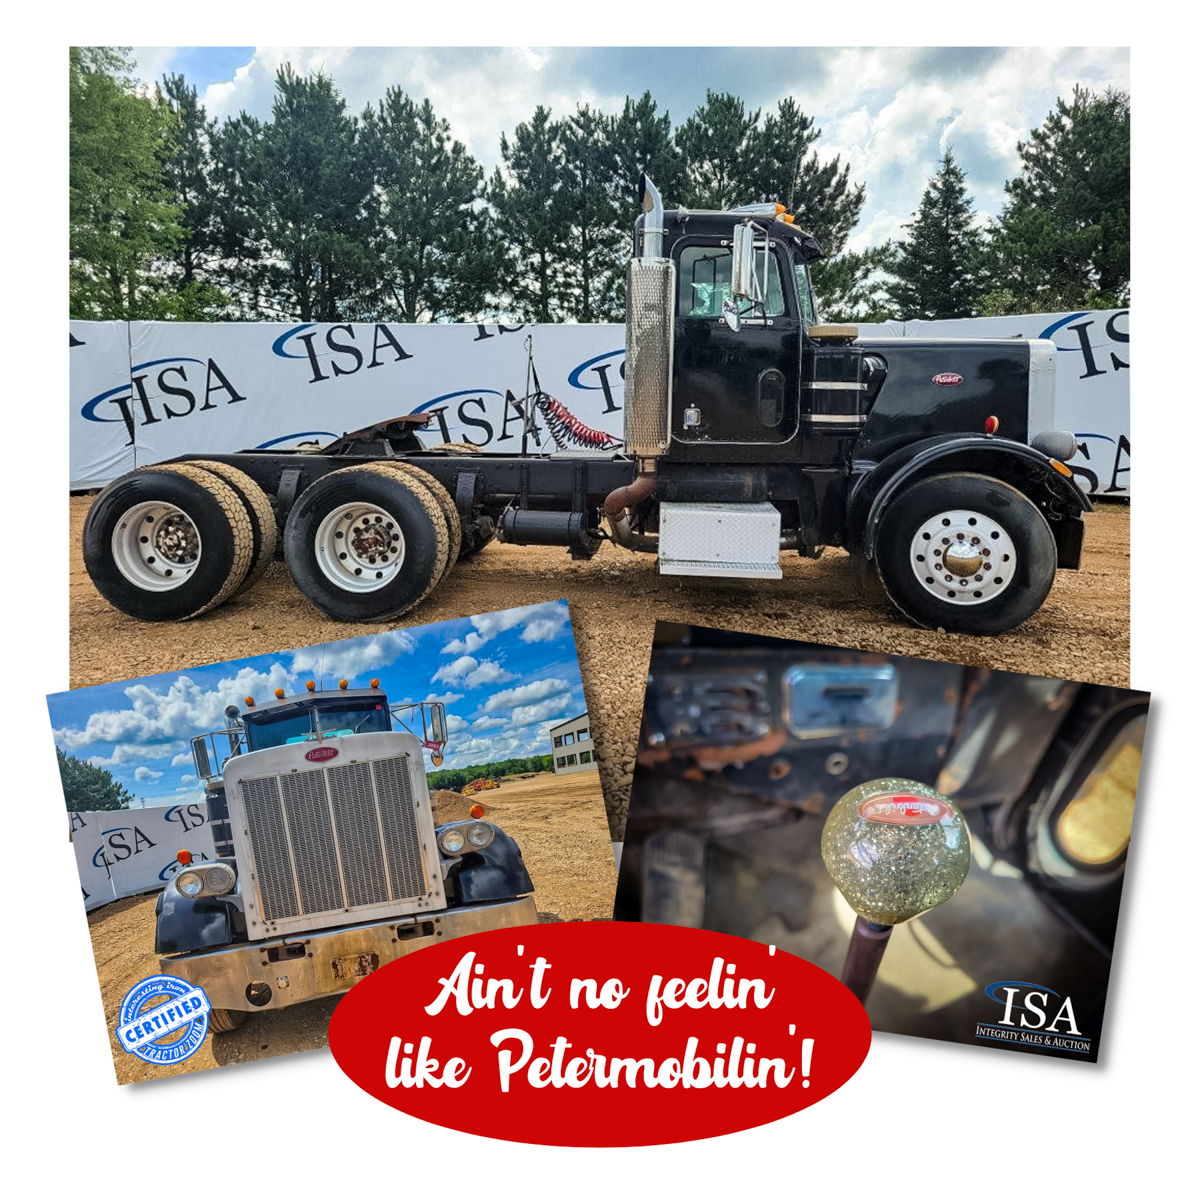 Collage of photos of a black Peterbilt 359 day cab semi truck at an auction